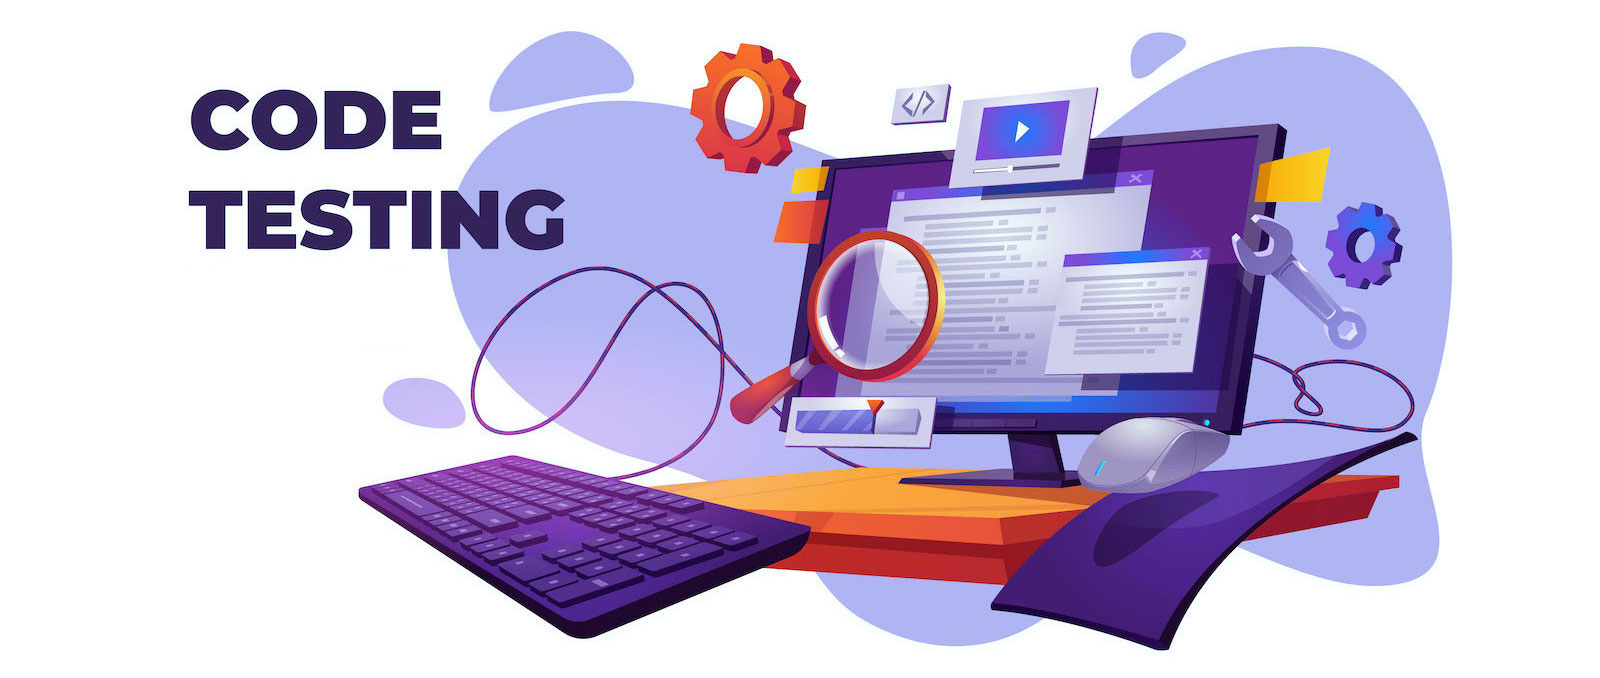 Code testing functional test for pc cartoon banner